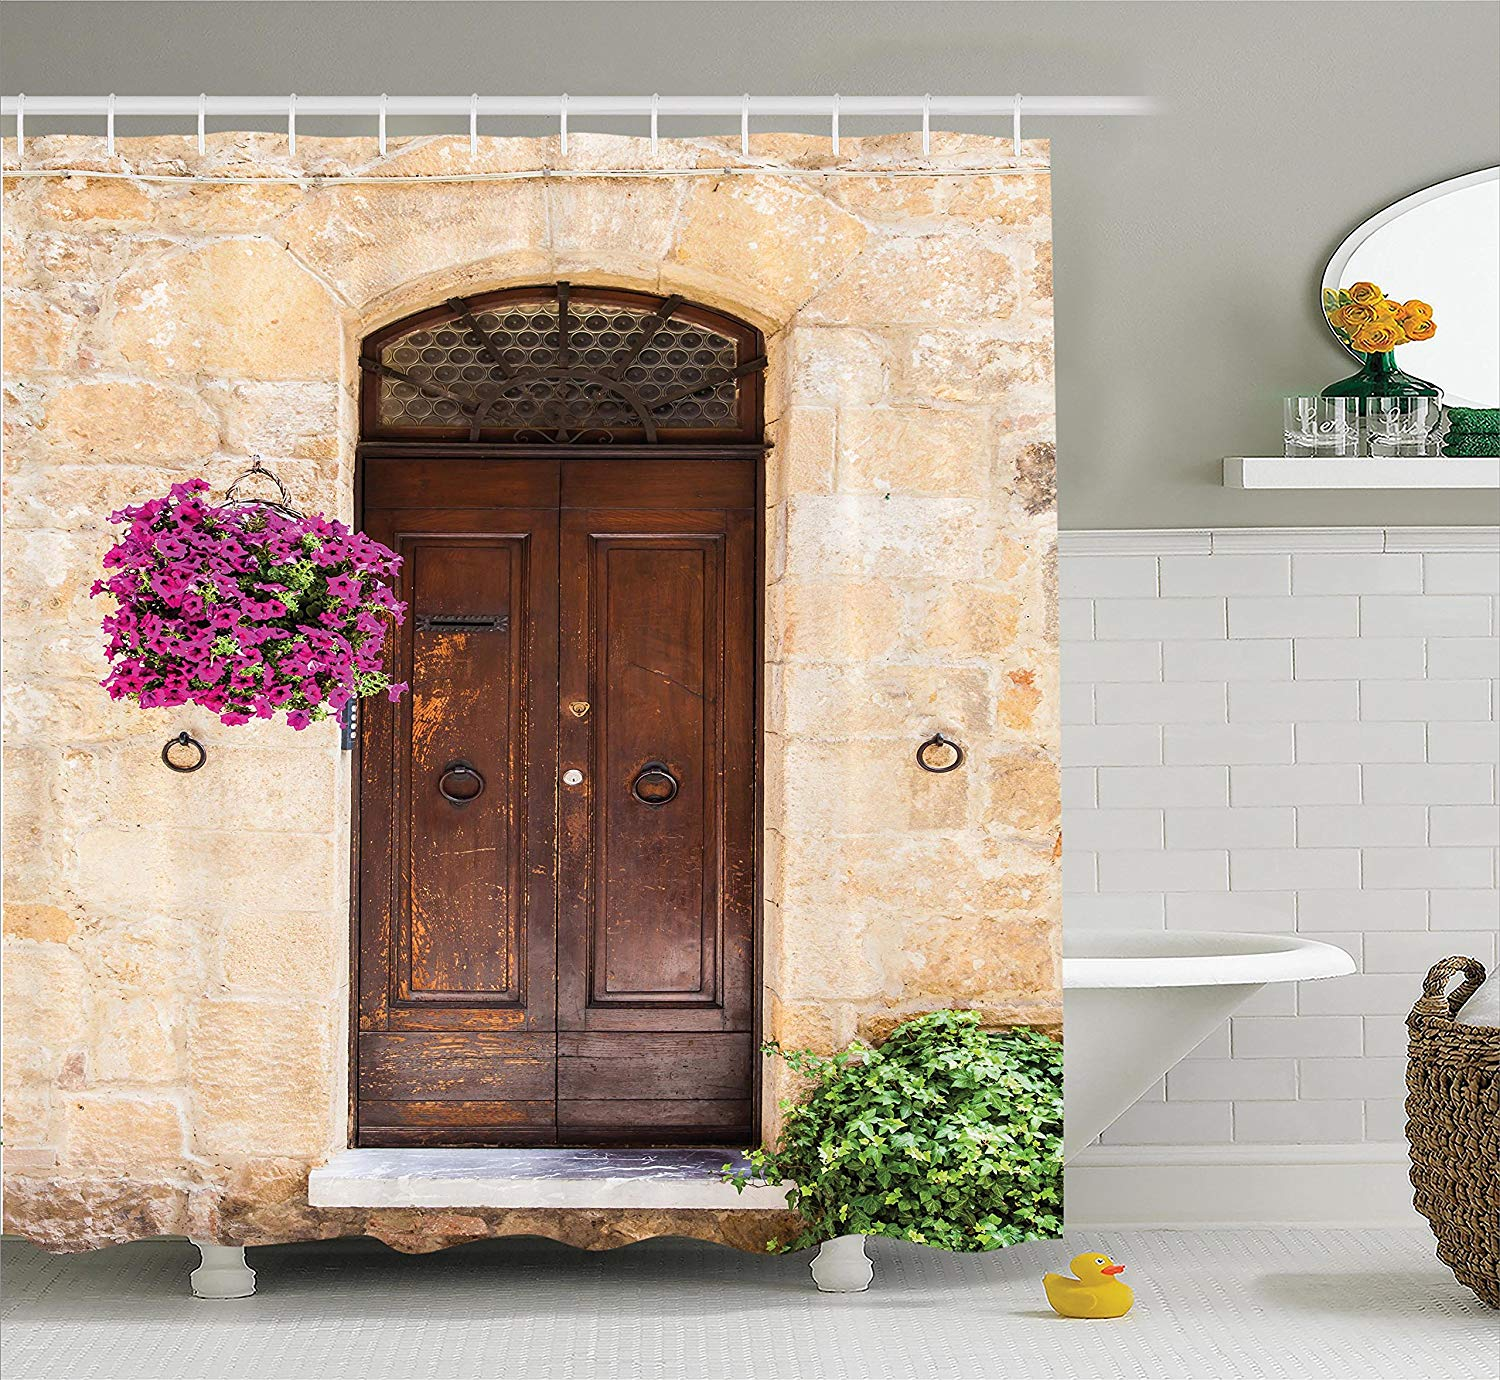 Tuscan Decor Shower Curtain Image of Rusty Wood Door with Flowers in ...